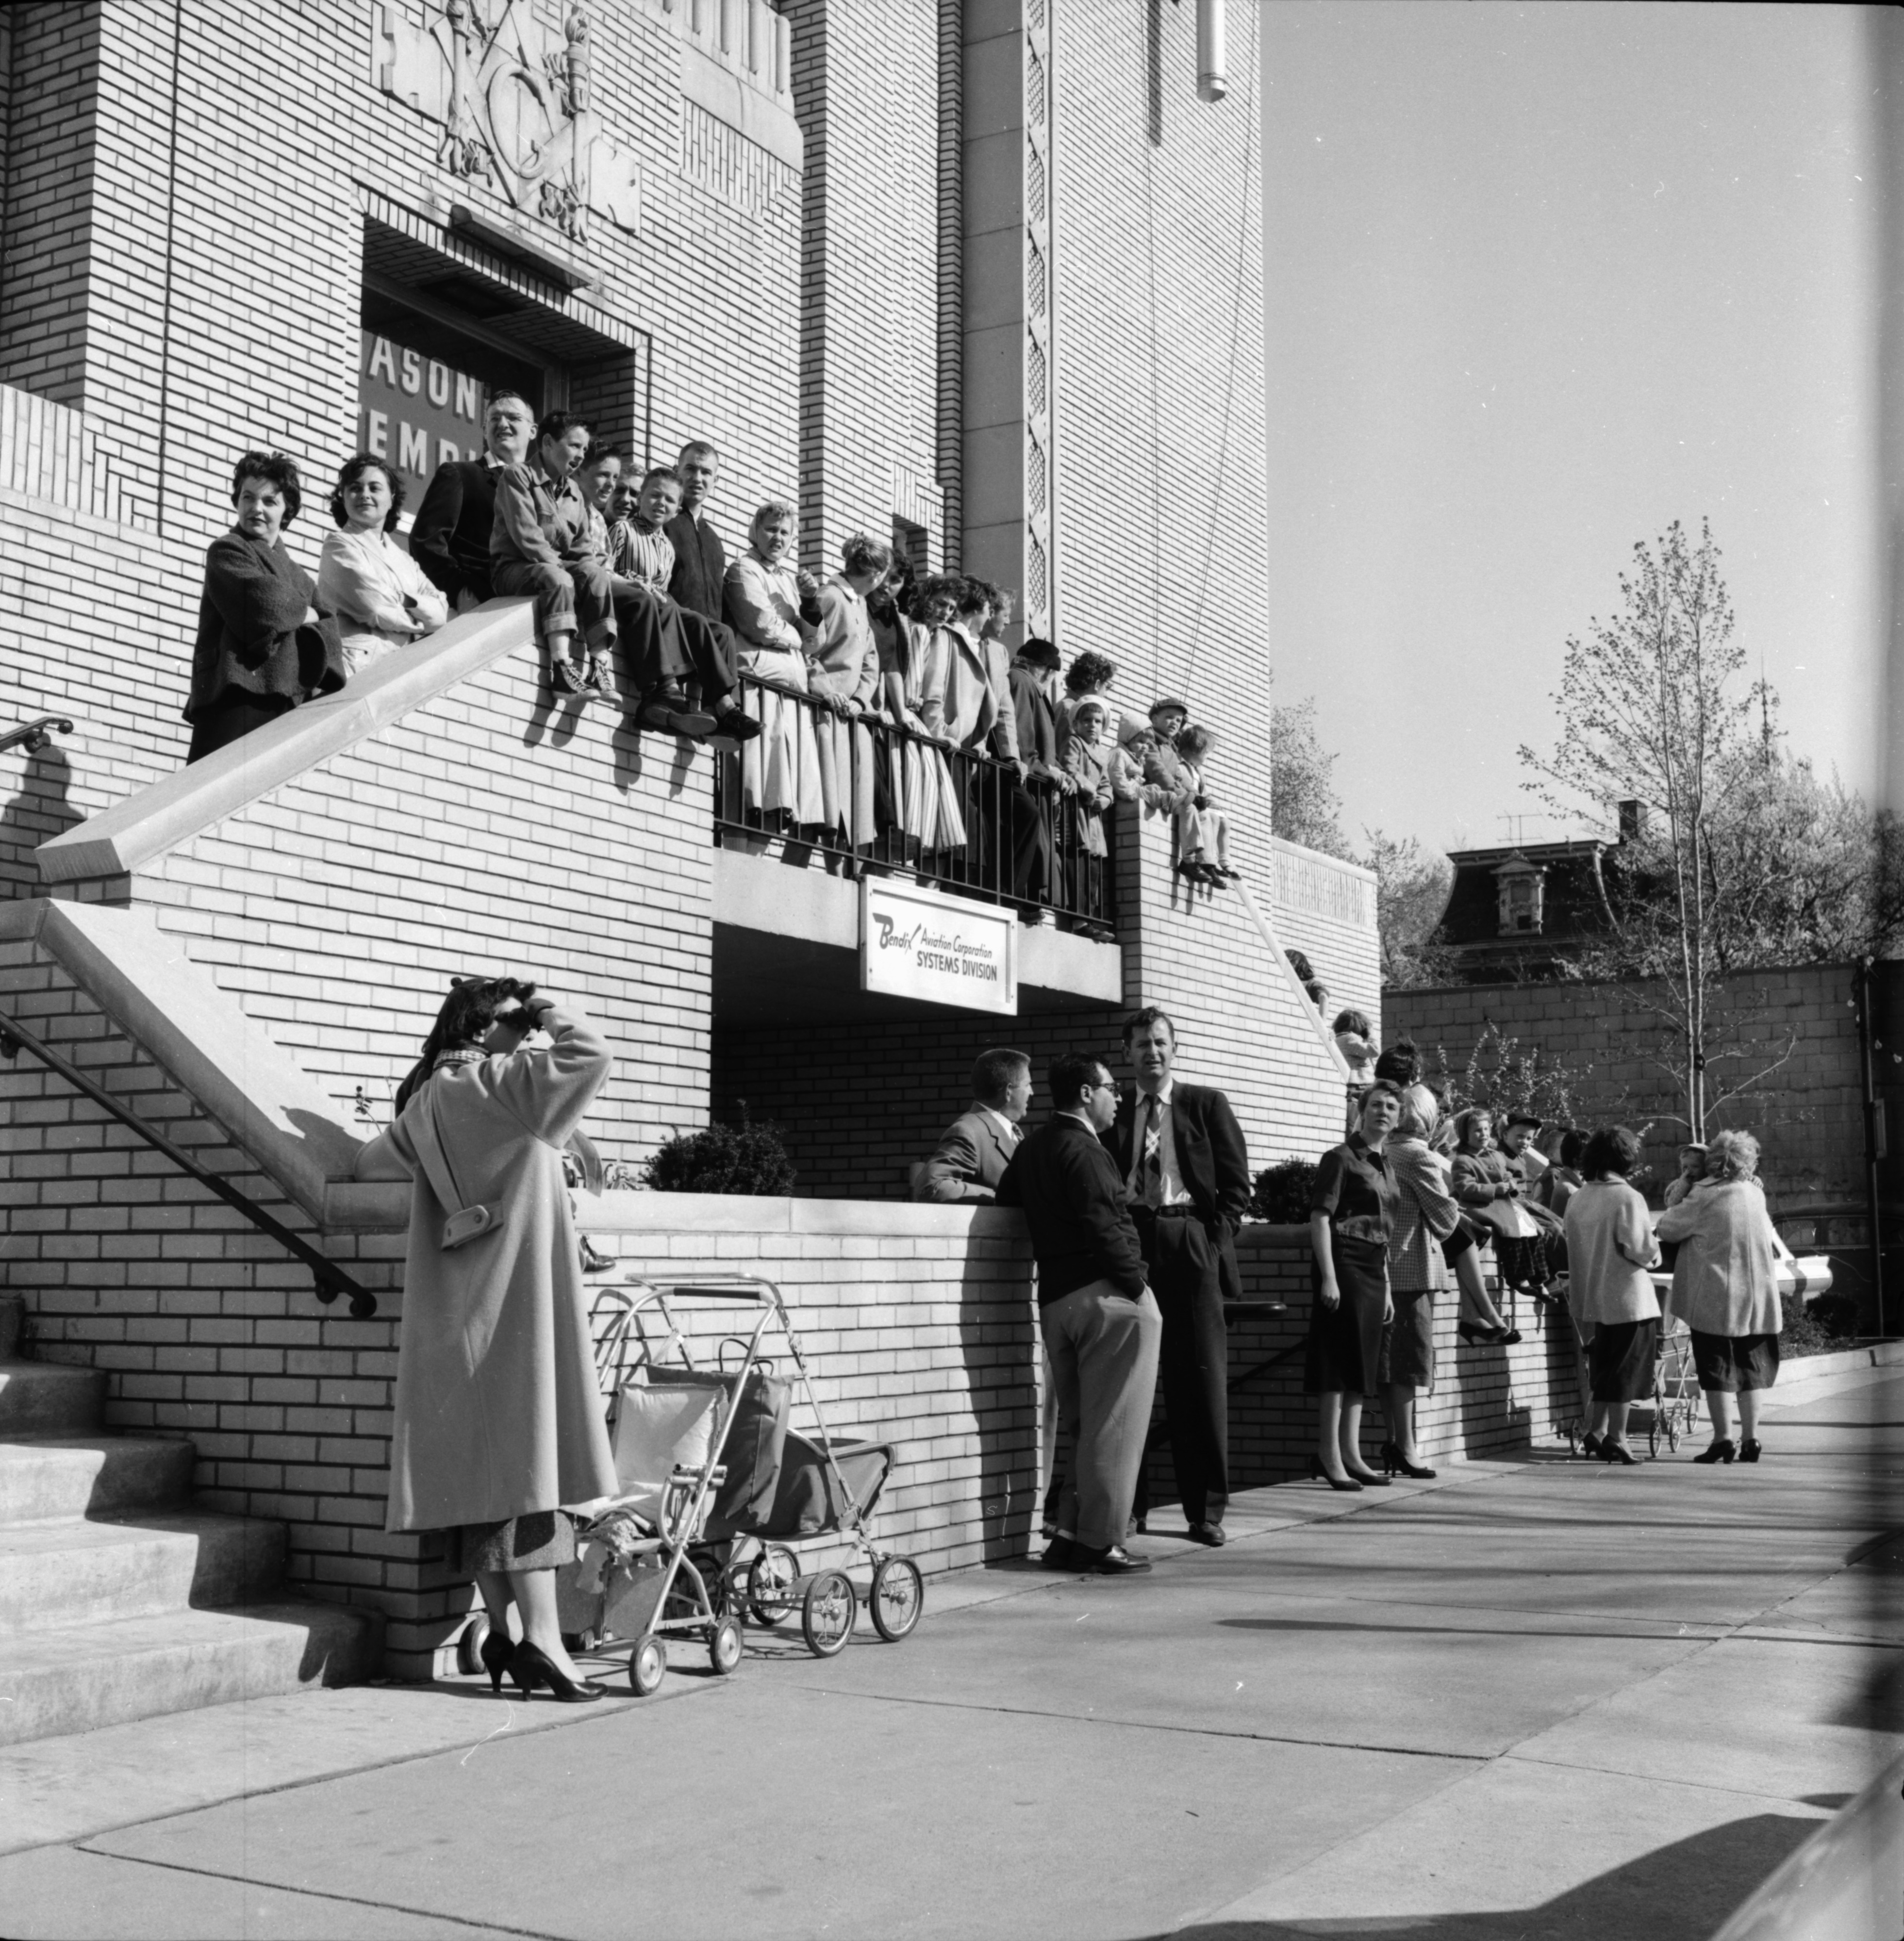 Spectators Watch The Michigras Parade at the Masonic Temple, April 1958 image